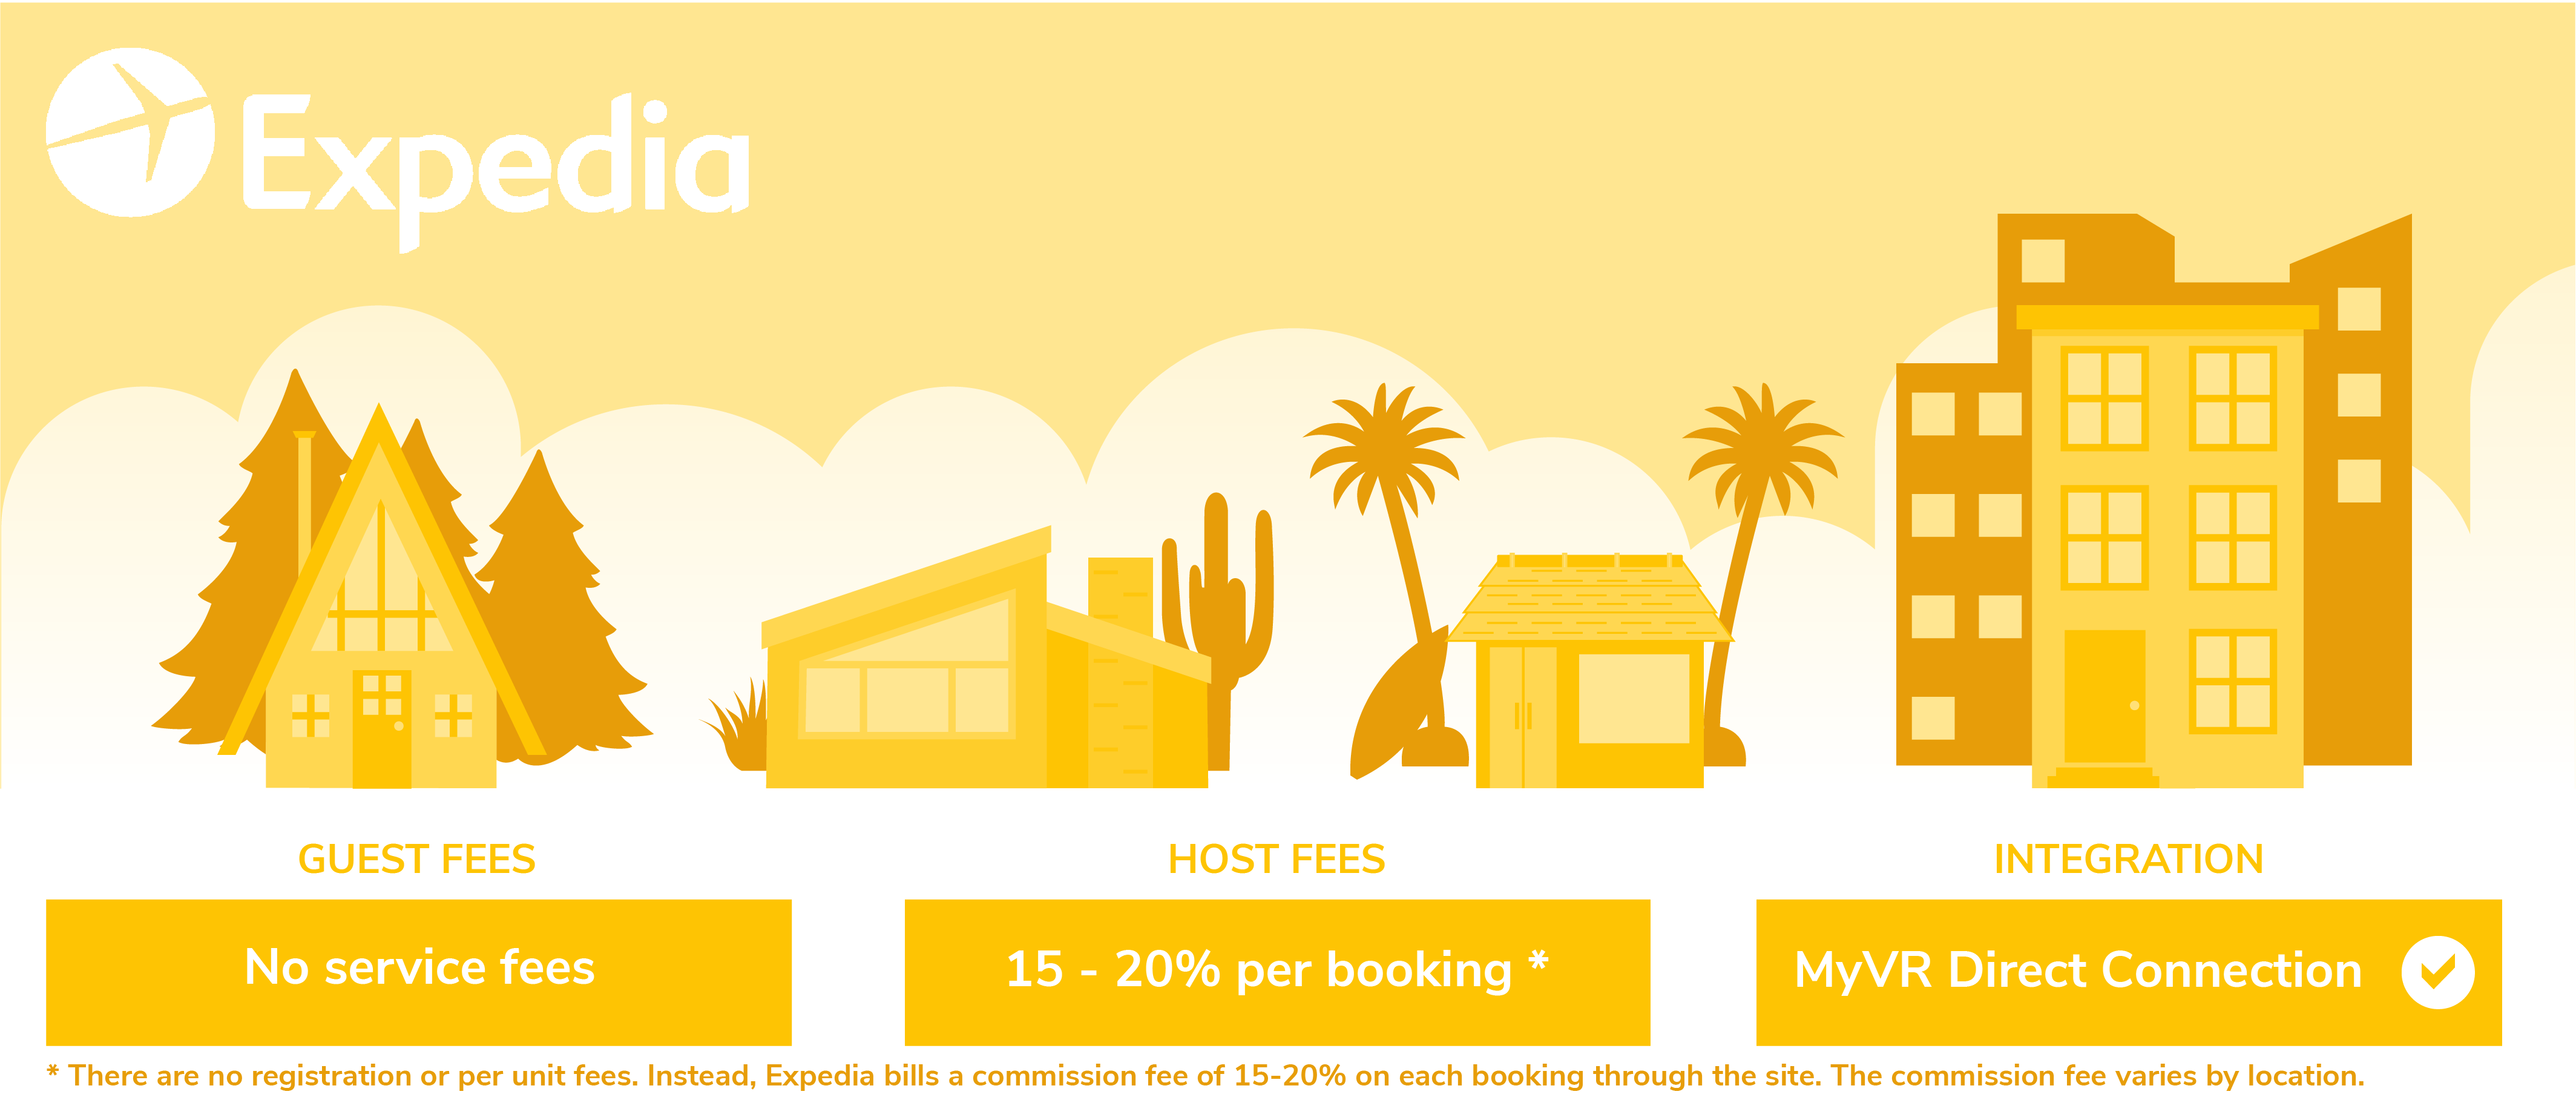 Expedia Host Fees, Guest Fees - MyVR